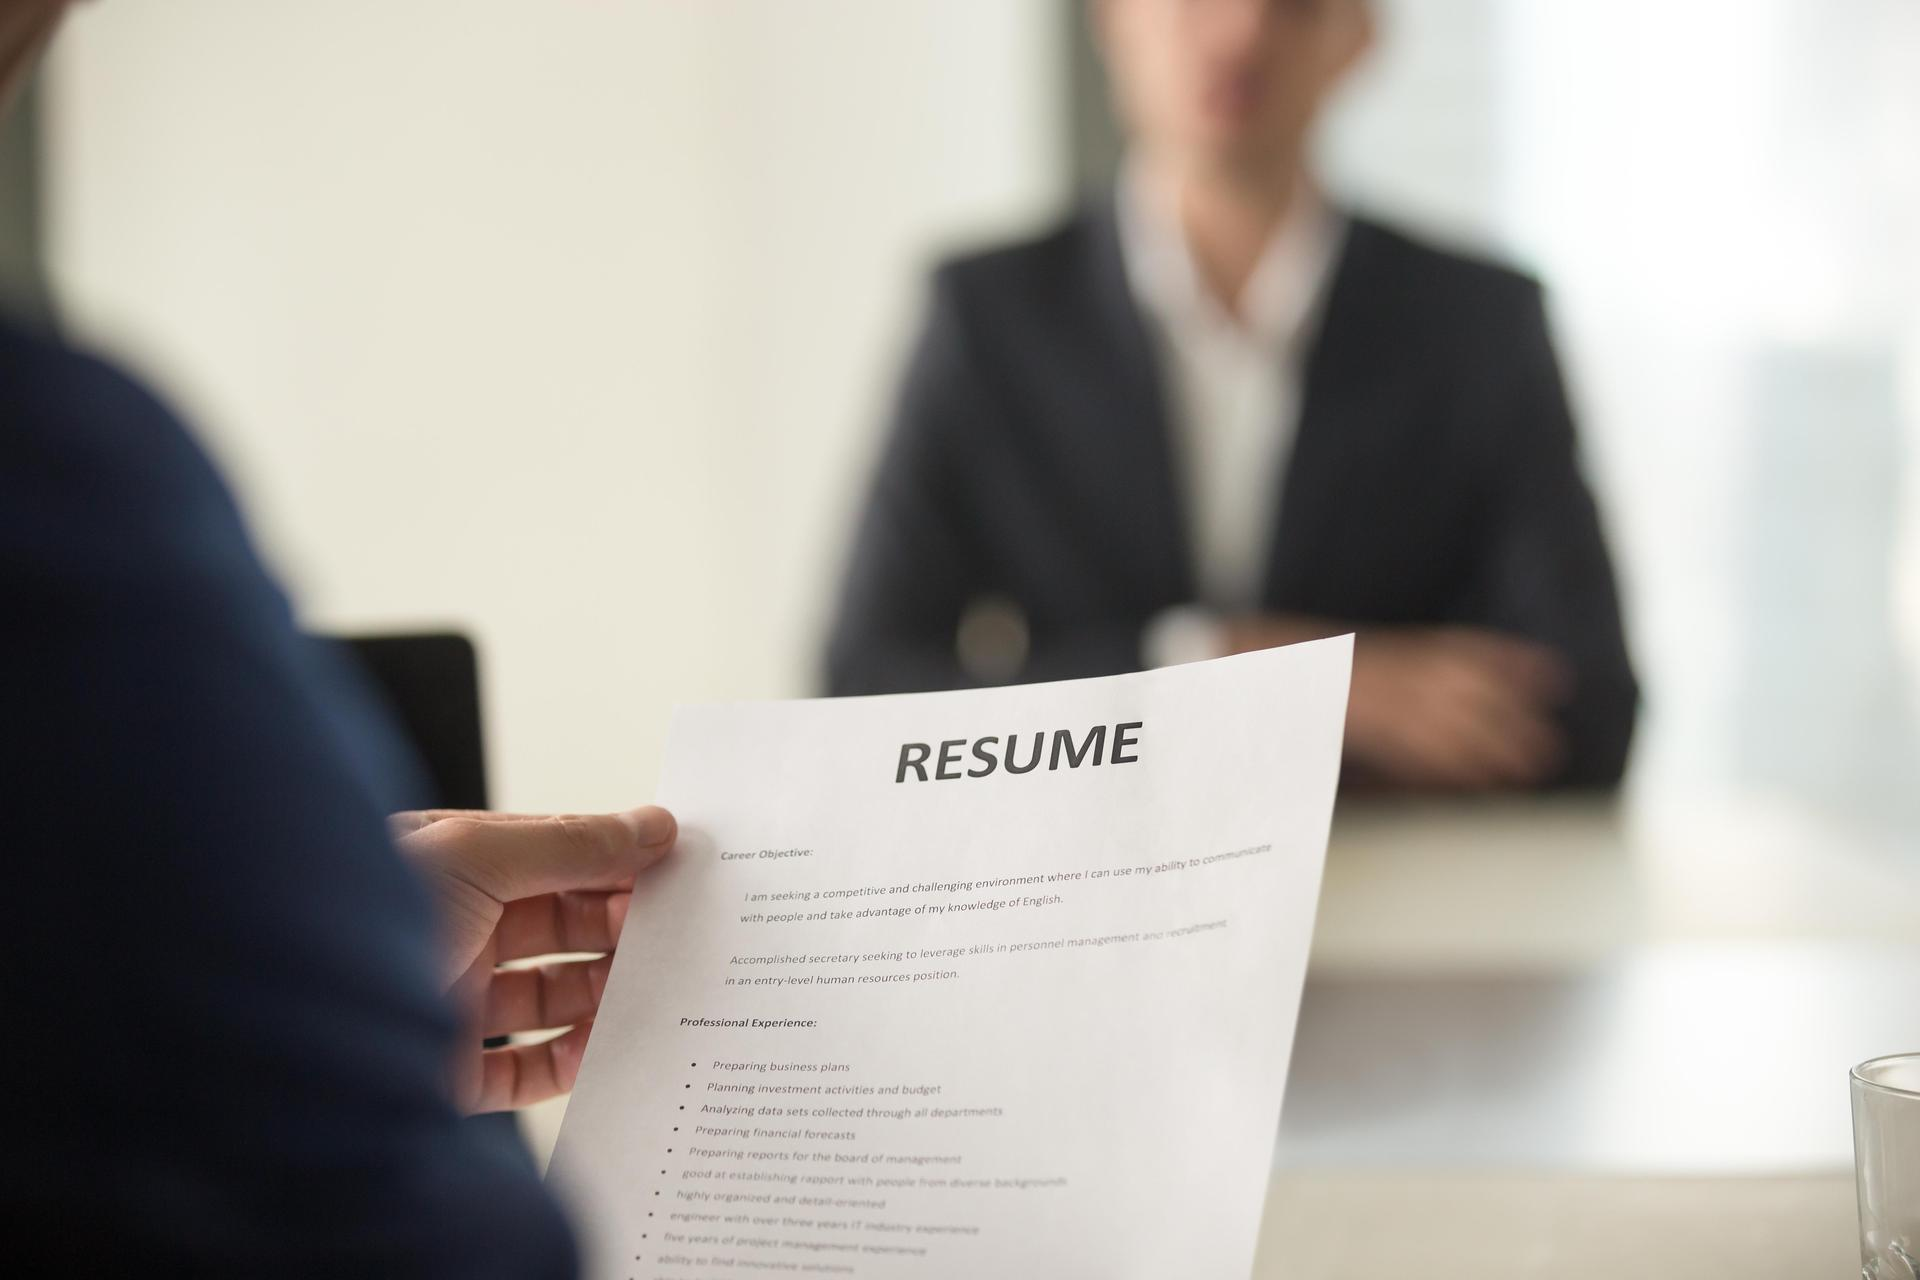 Human Resource Entry Level Cover Letter from 3.files.edl.io